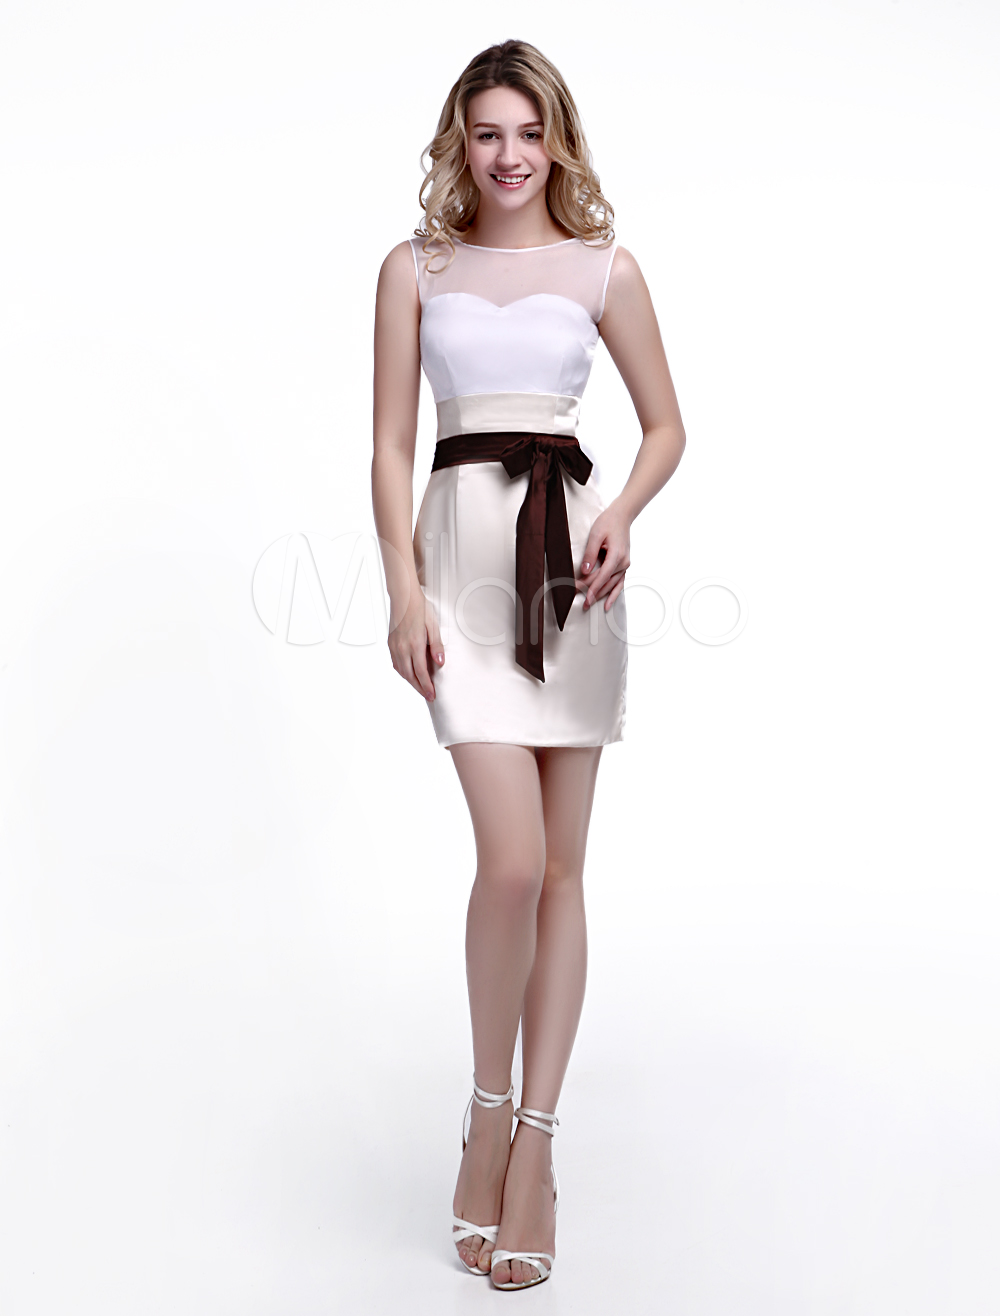 Champagne Wedding Guest Dress Sheath with Jewel Neck Bow and Satin Skirt Wedding Guest Dress Milanoo